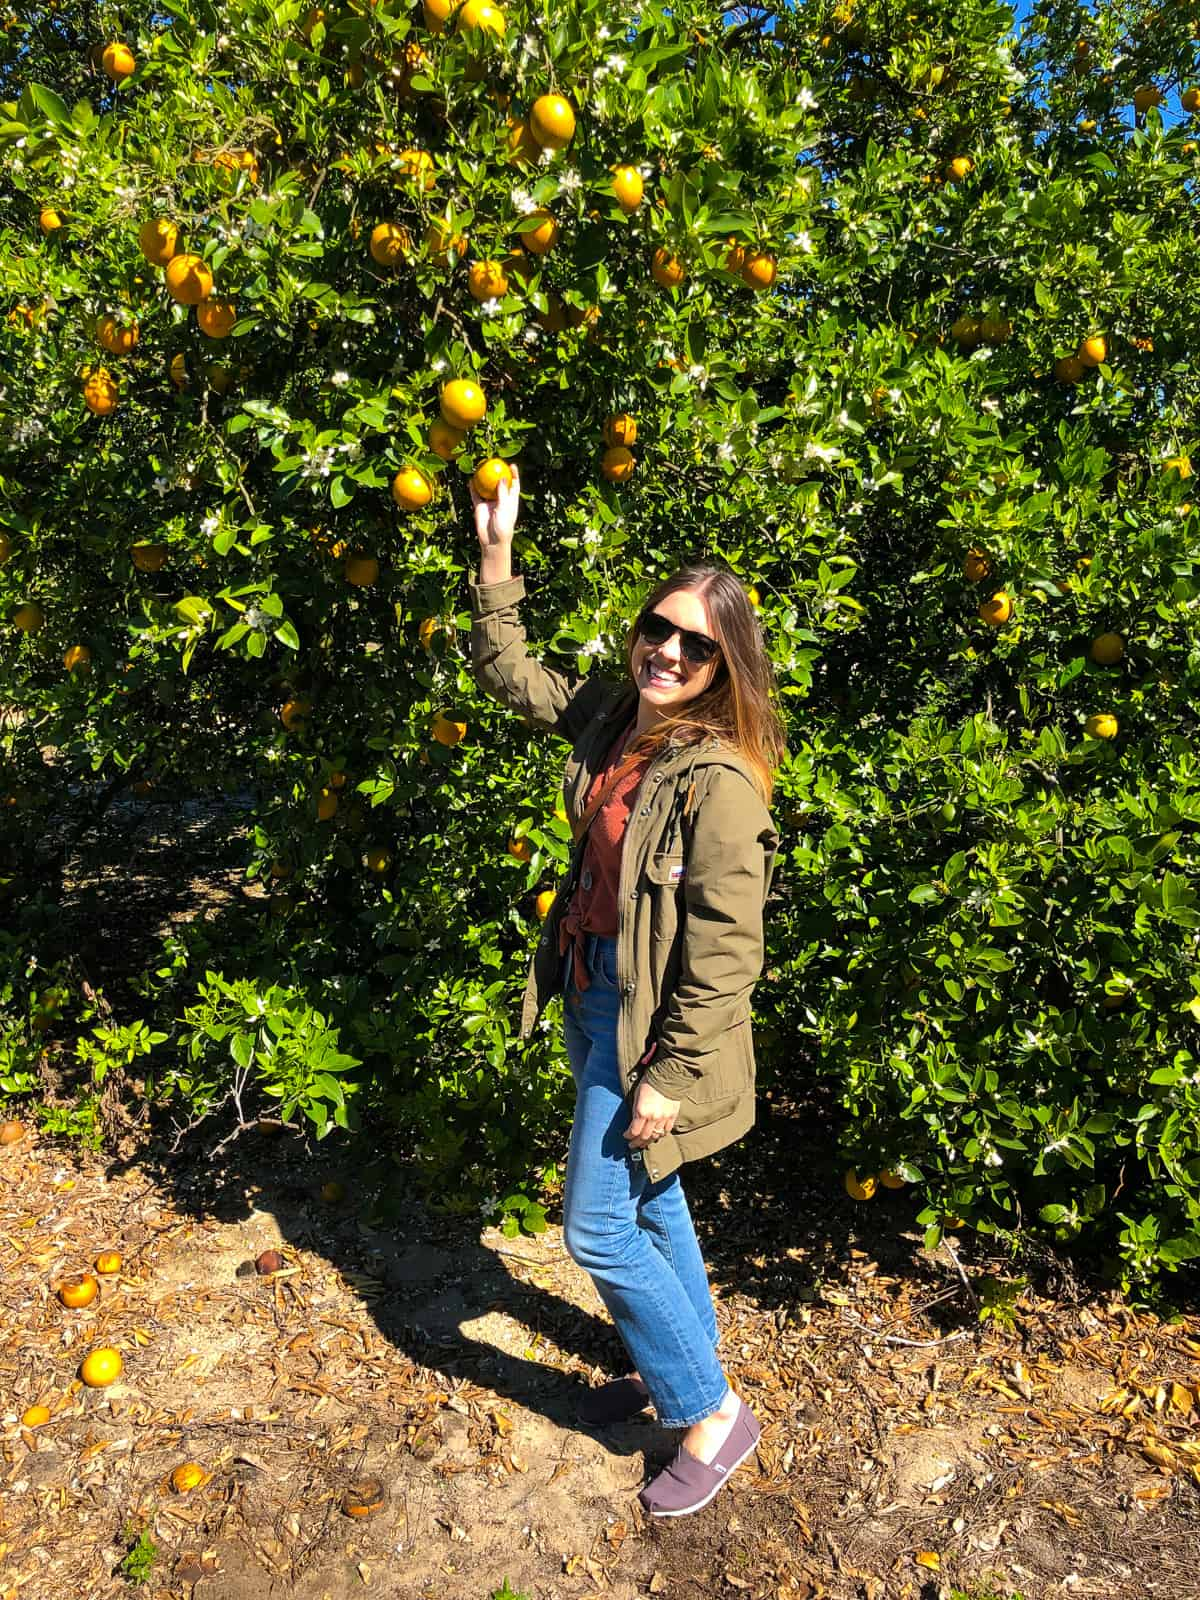 Kara in front of a citrus tree